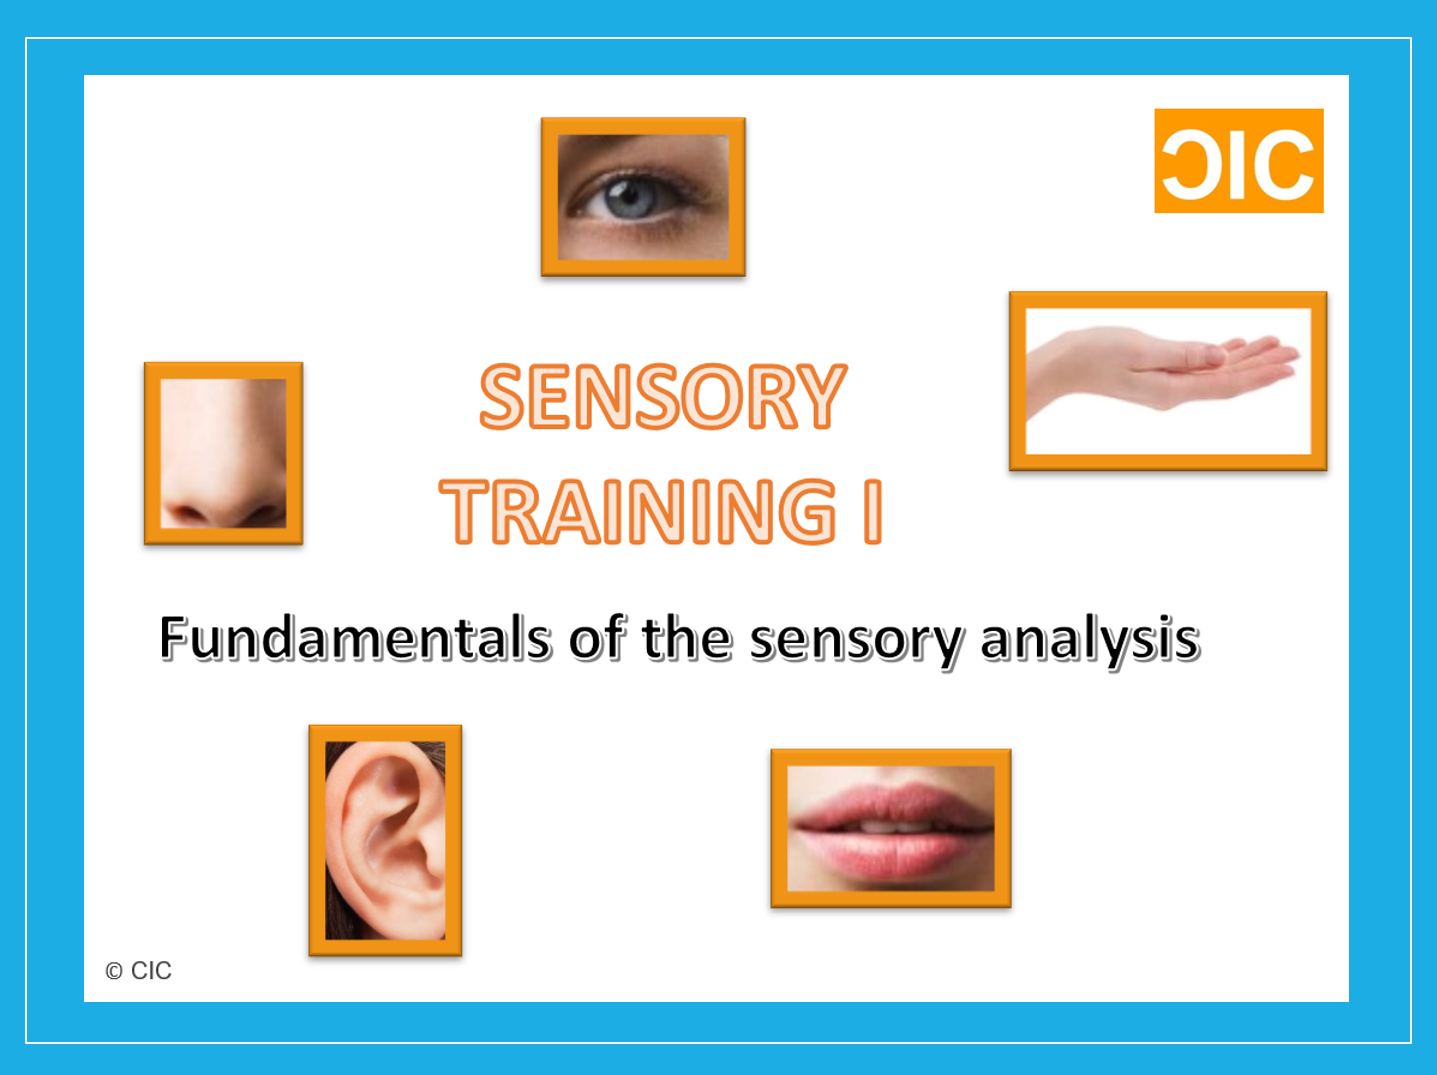 a study of sensory data Occupational therapy using a sensory integrative approach: a case study of effectiveness you will receive an email whenever this article is corrected, updated, or cited in the literature you can manage this and all other alerts in my account.